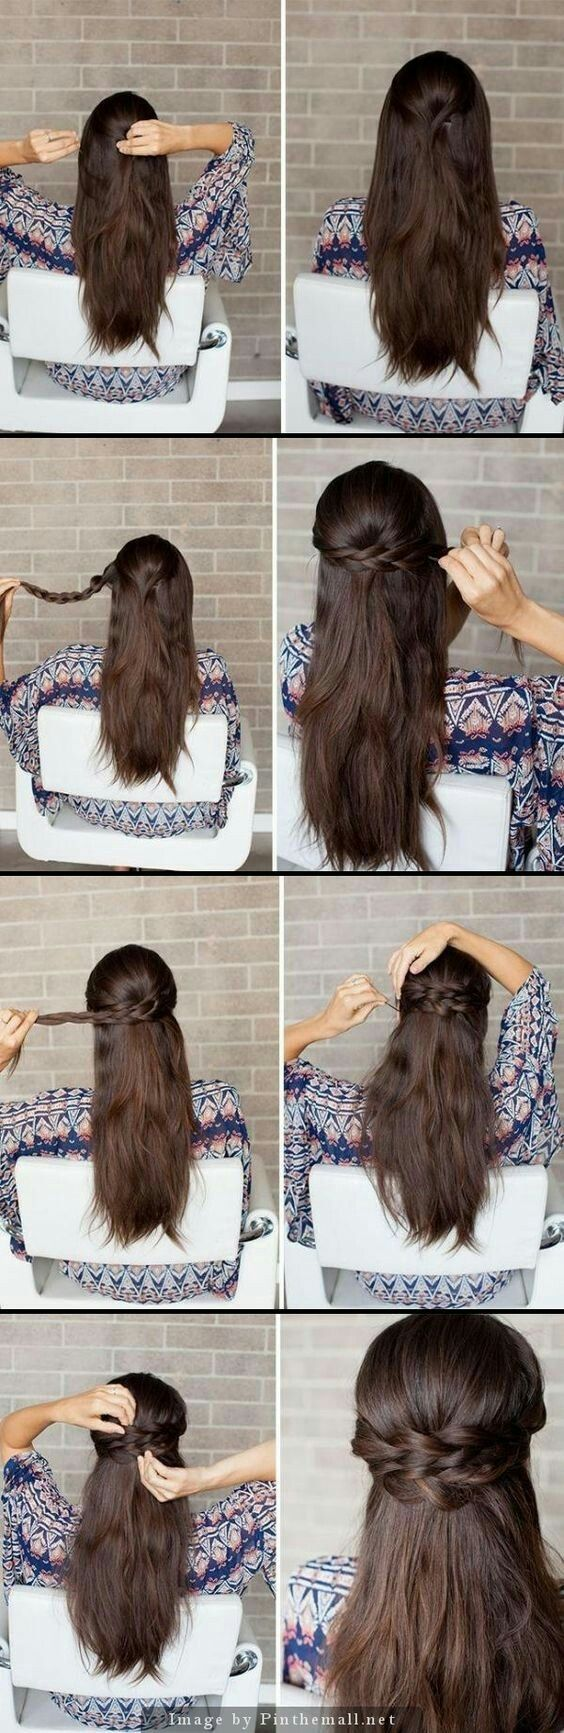 Find 48 Easy Hairstyles for Schools + Tutorials